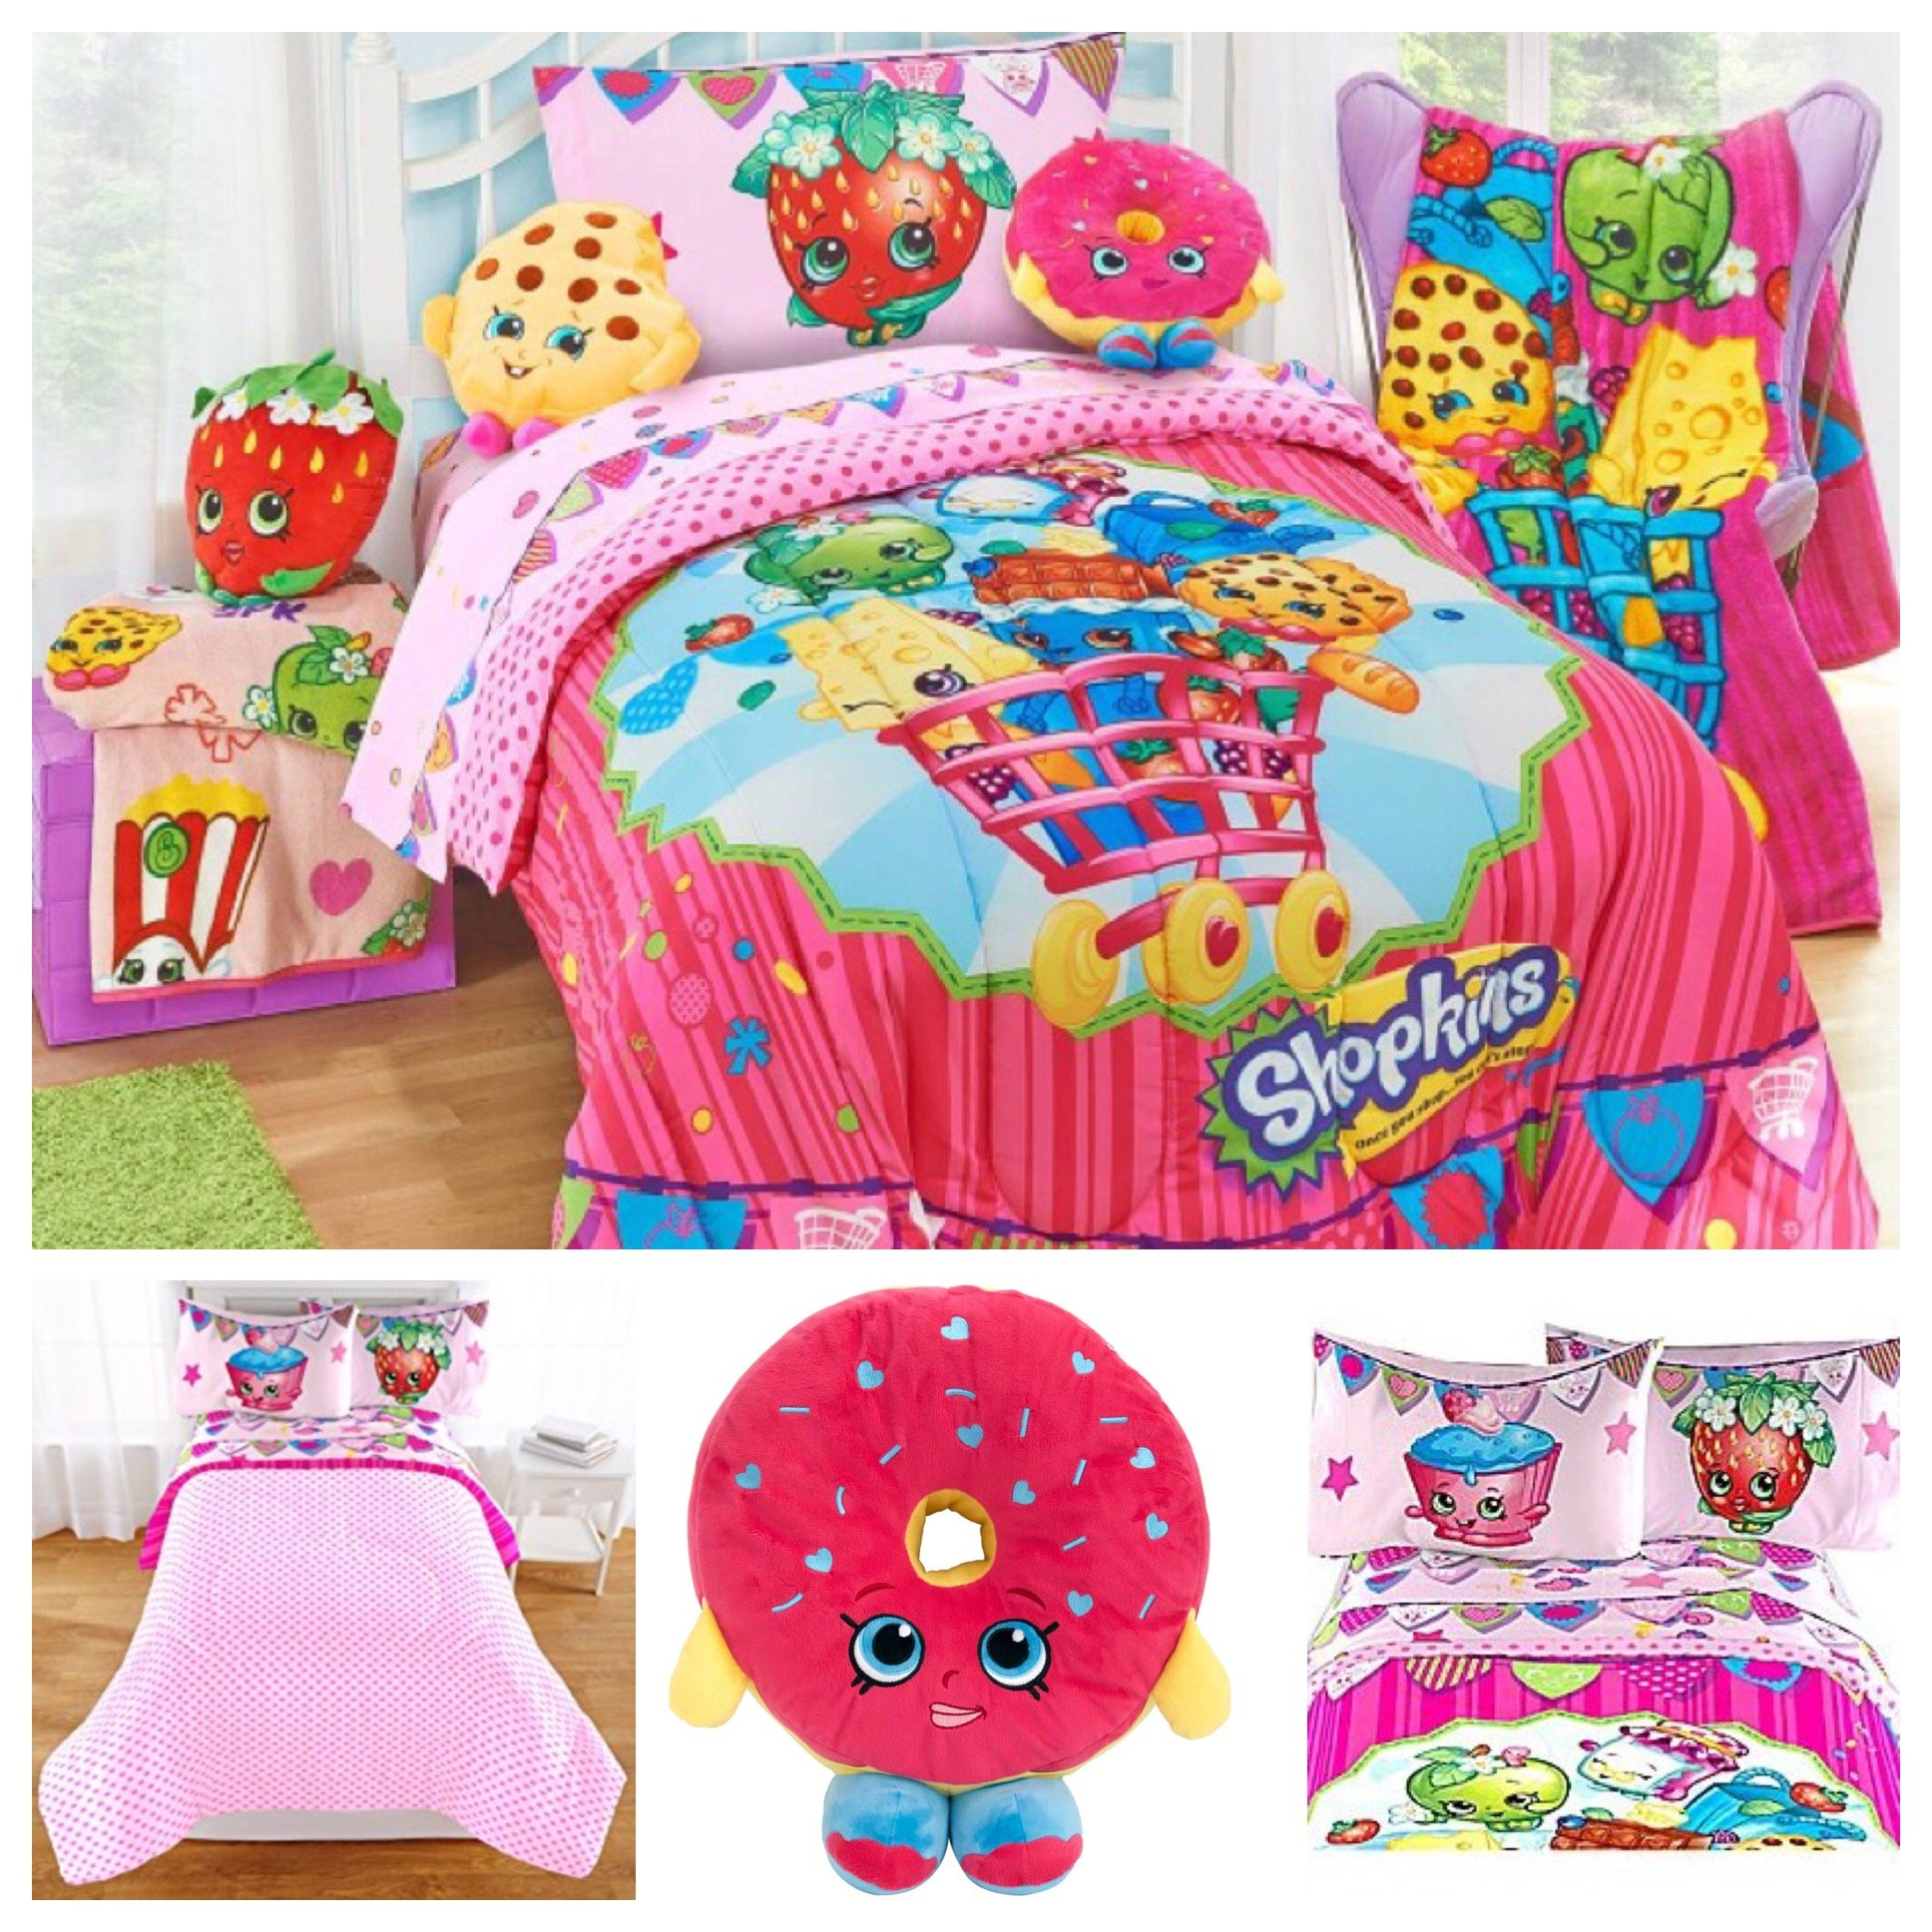 Shopkins Toys Bedding Comforter Set with D'lish Donut Scented Pillow - Full